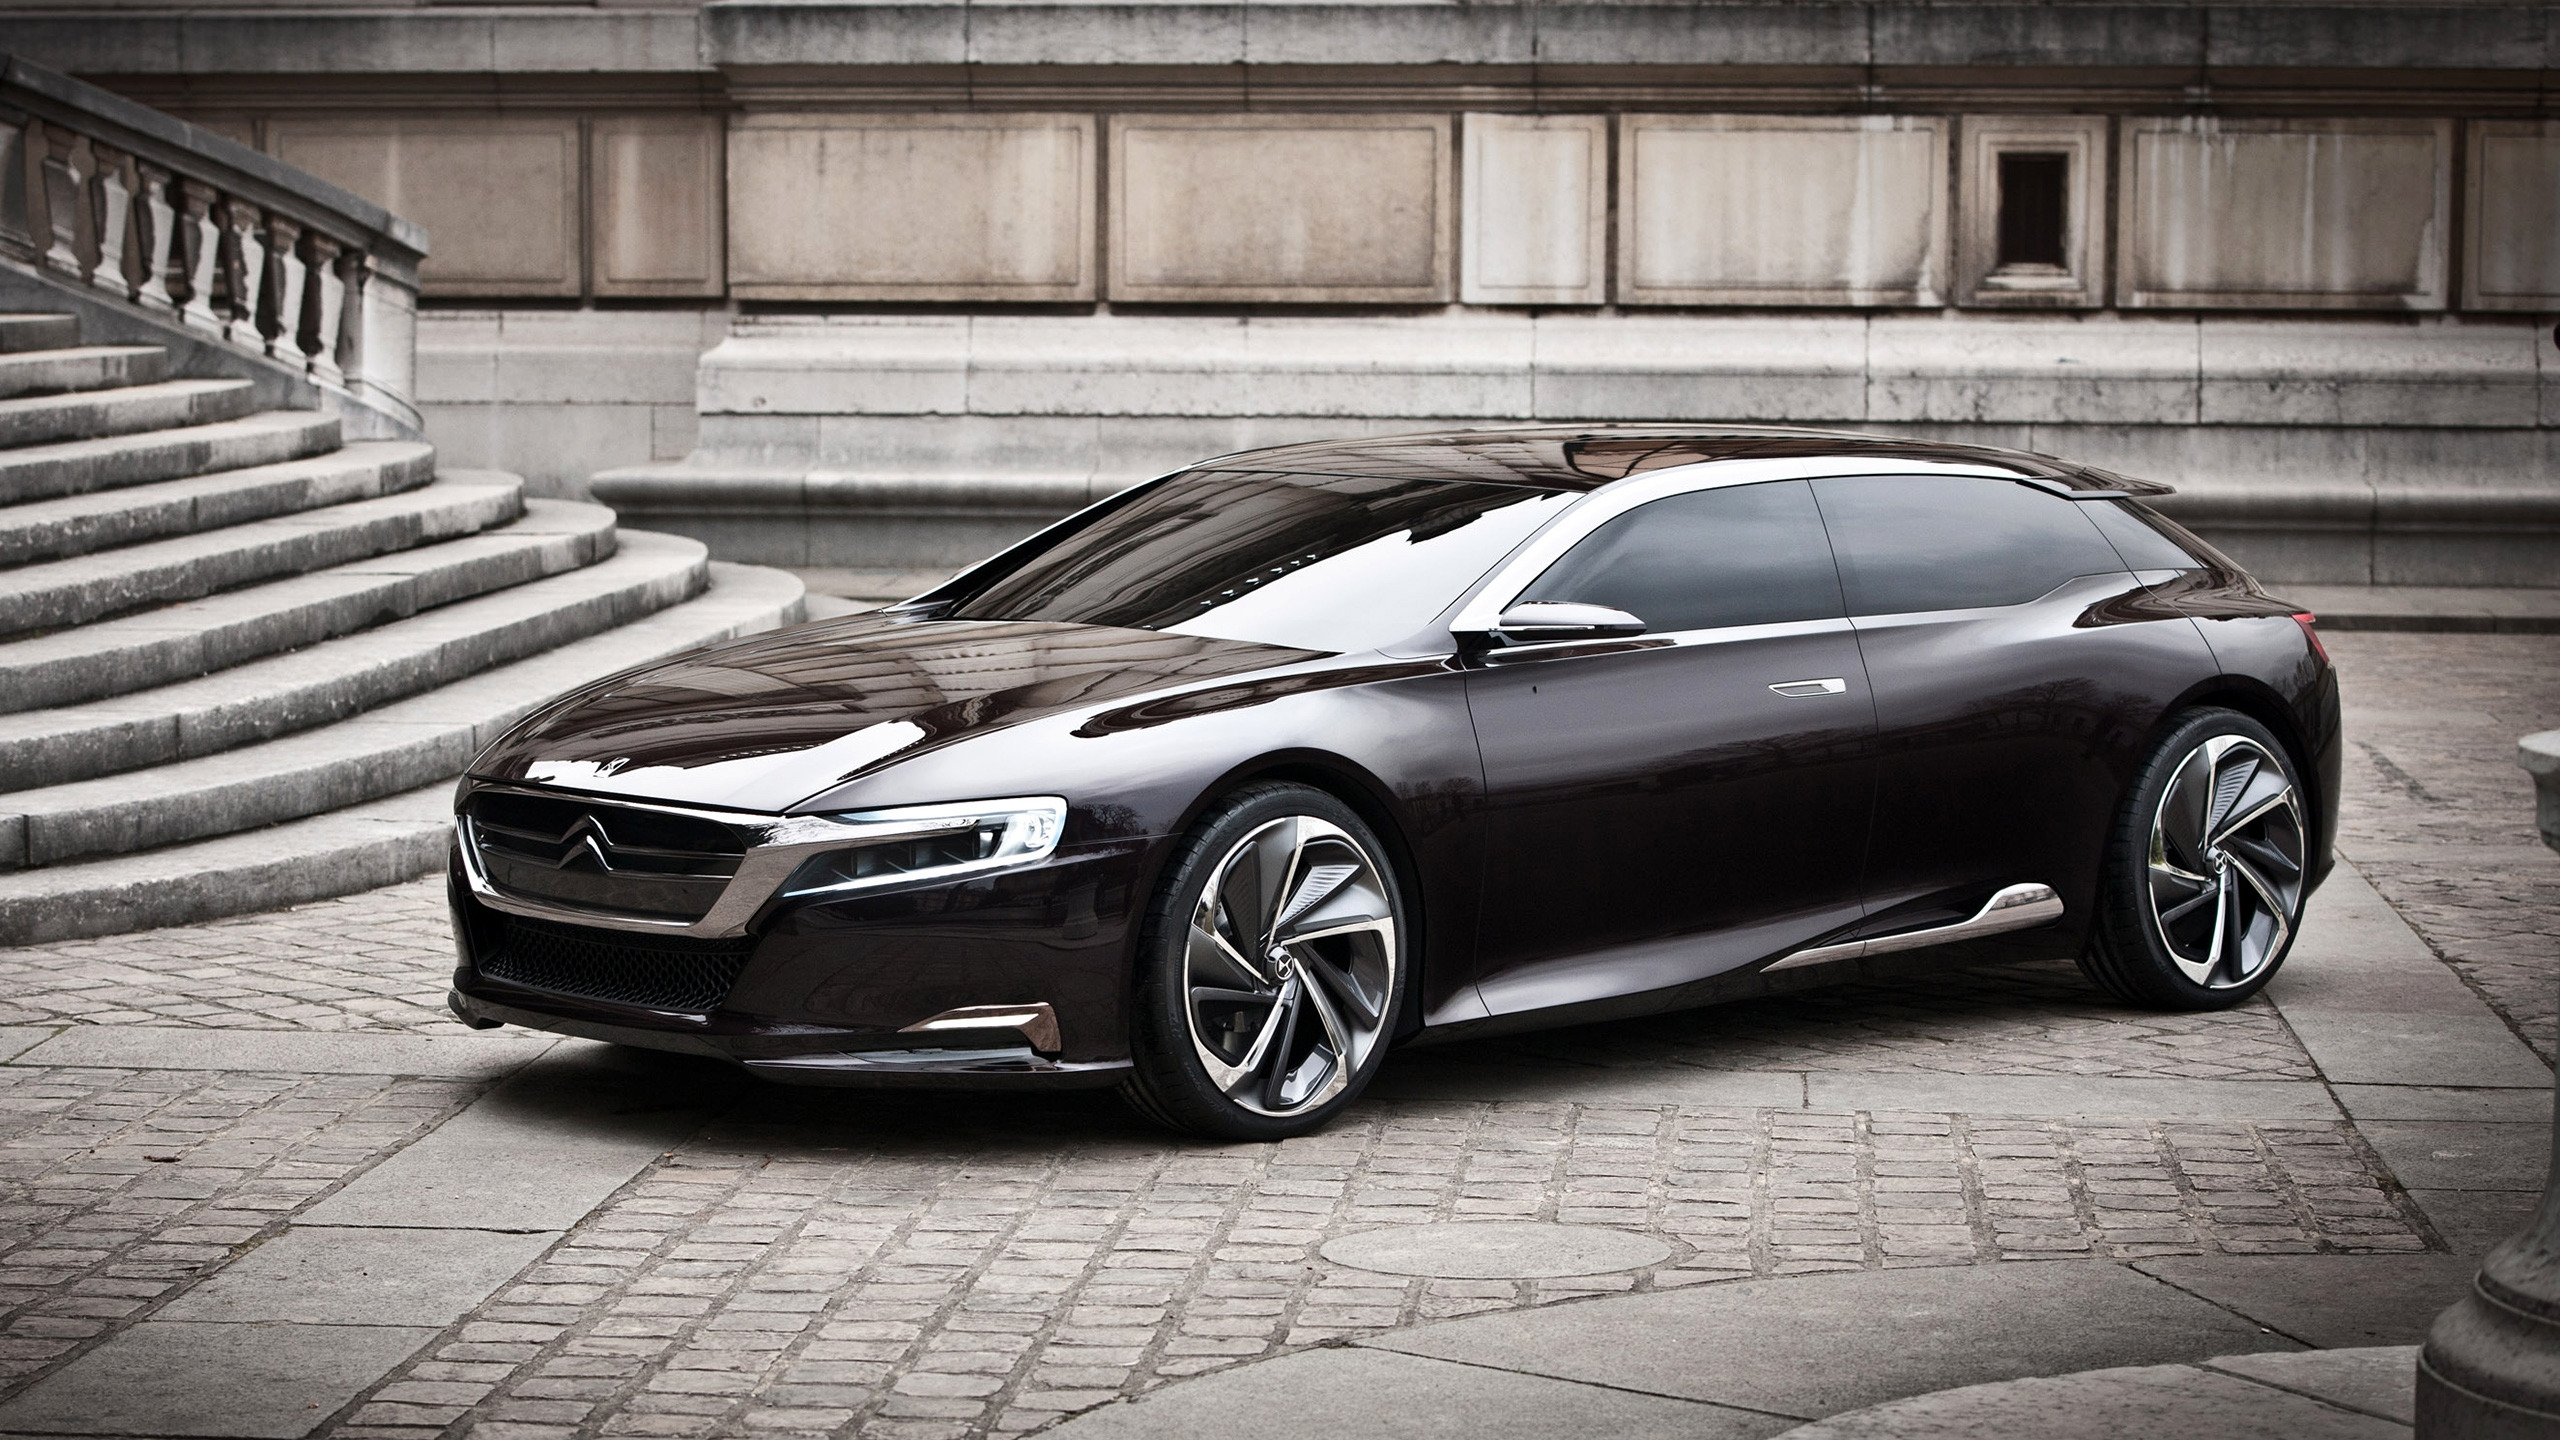 citroen numero 9 concept 2012 2560x1440 wallpaper 9513